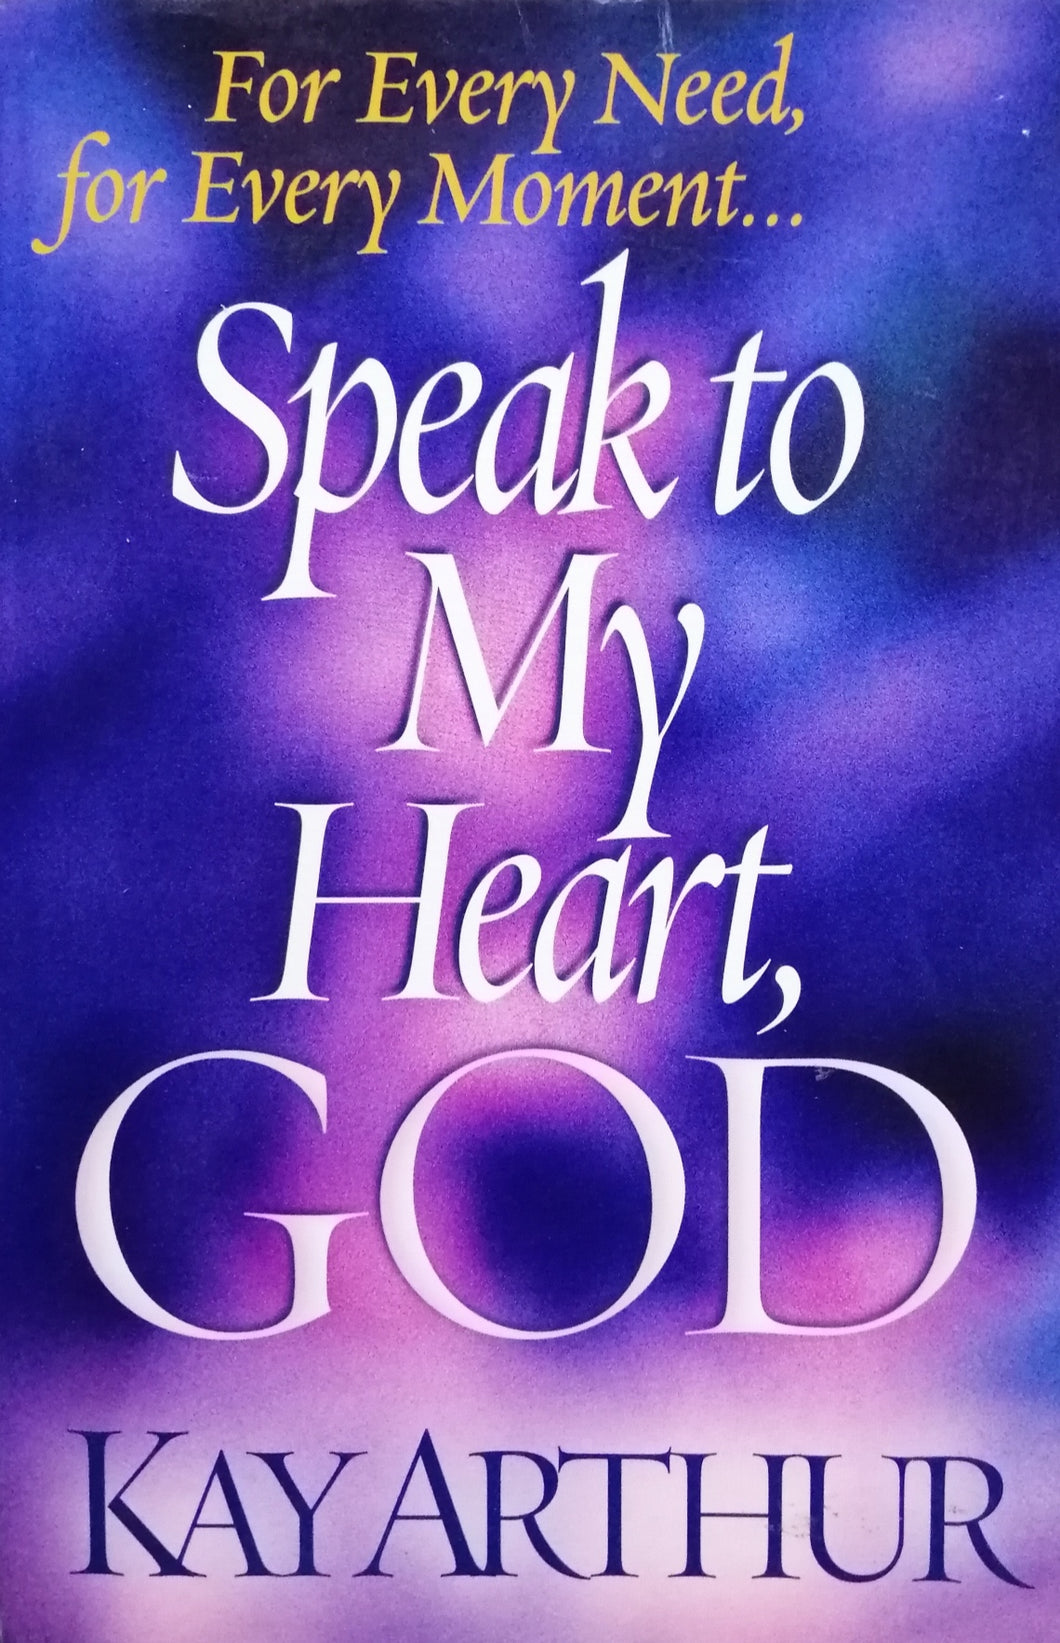 Speak to my heart.God by: Kay Arthur